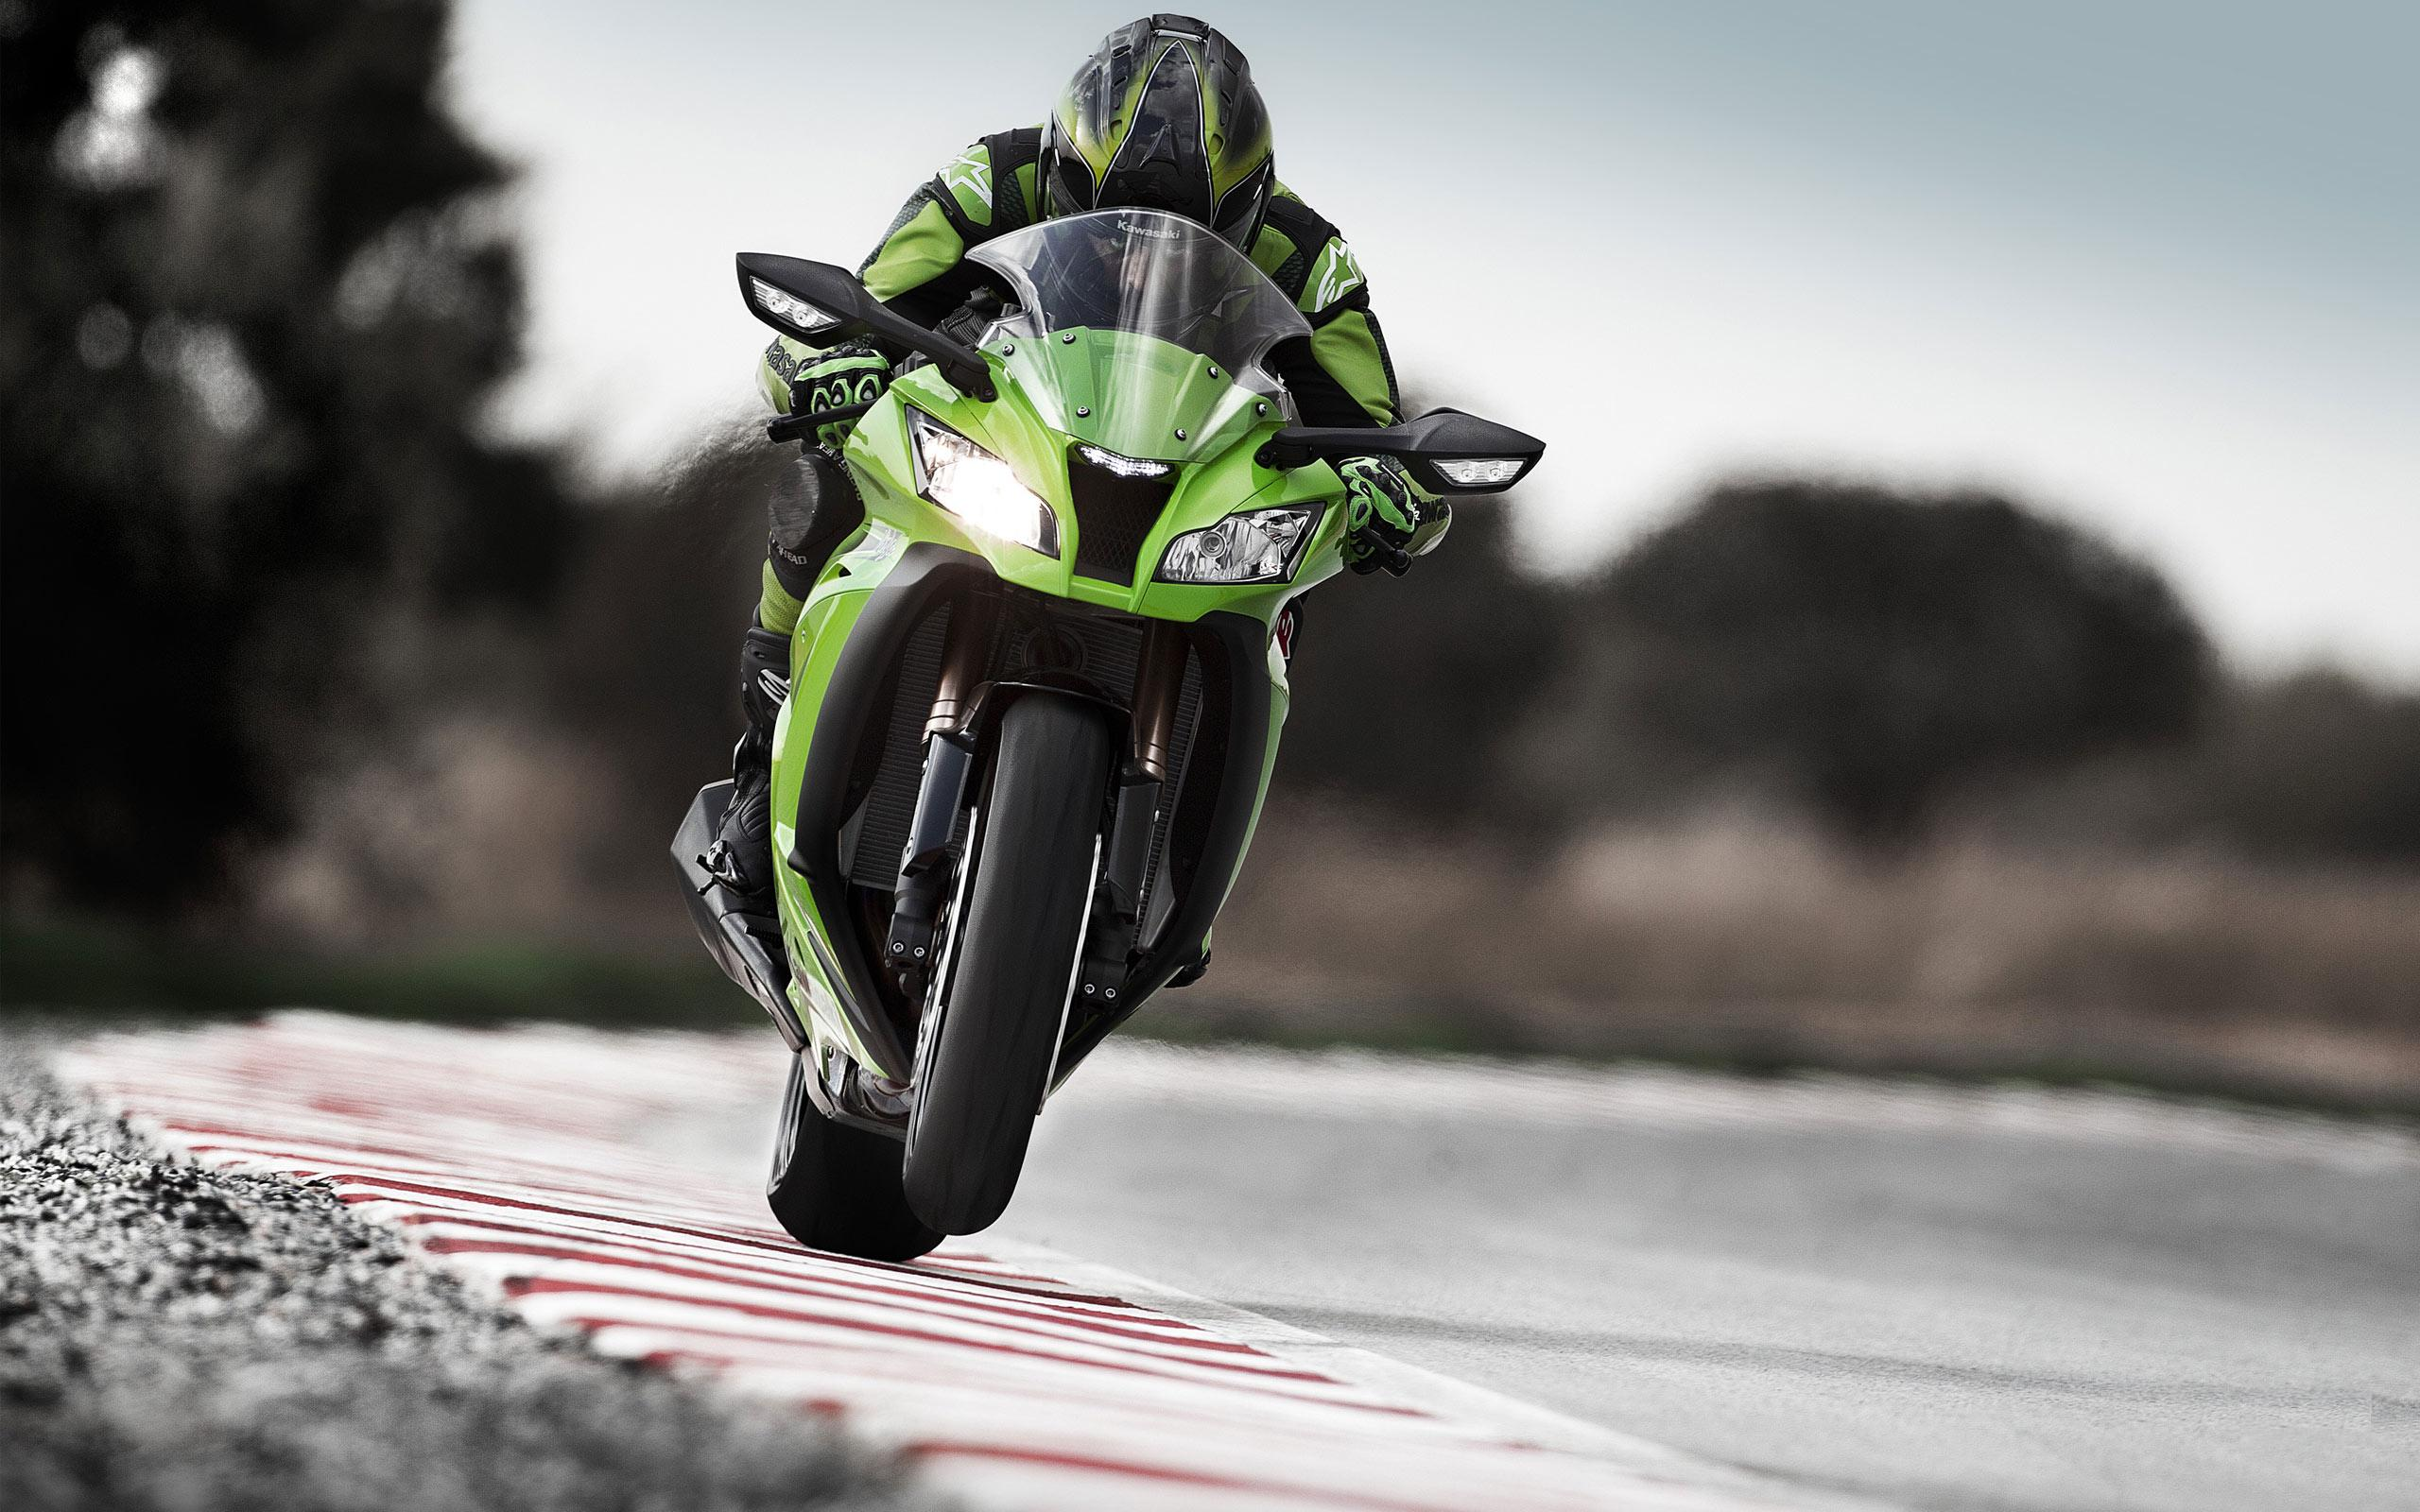 kawasaki_motorcycle_racing-wide